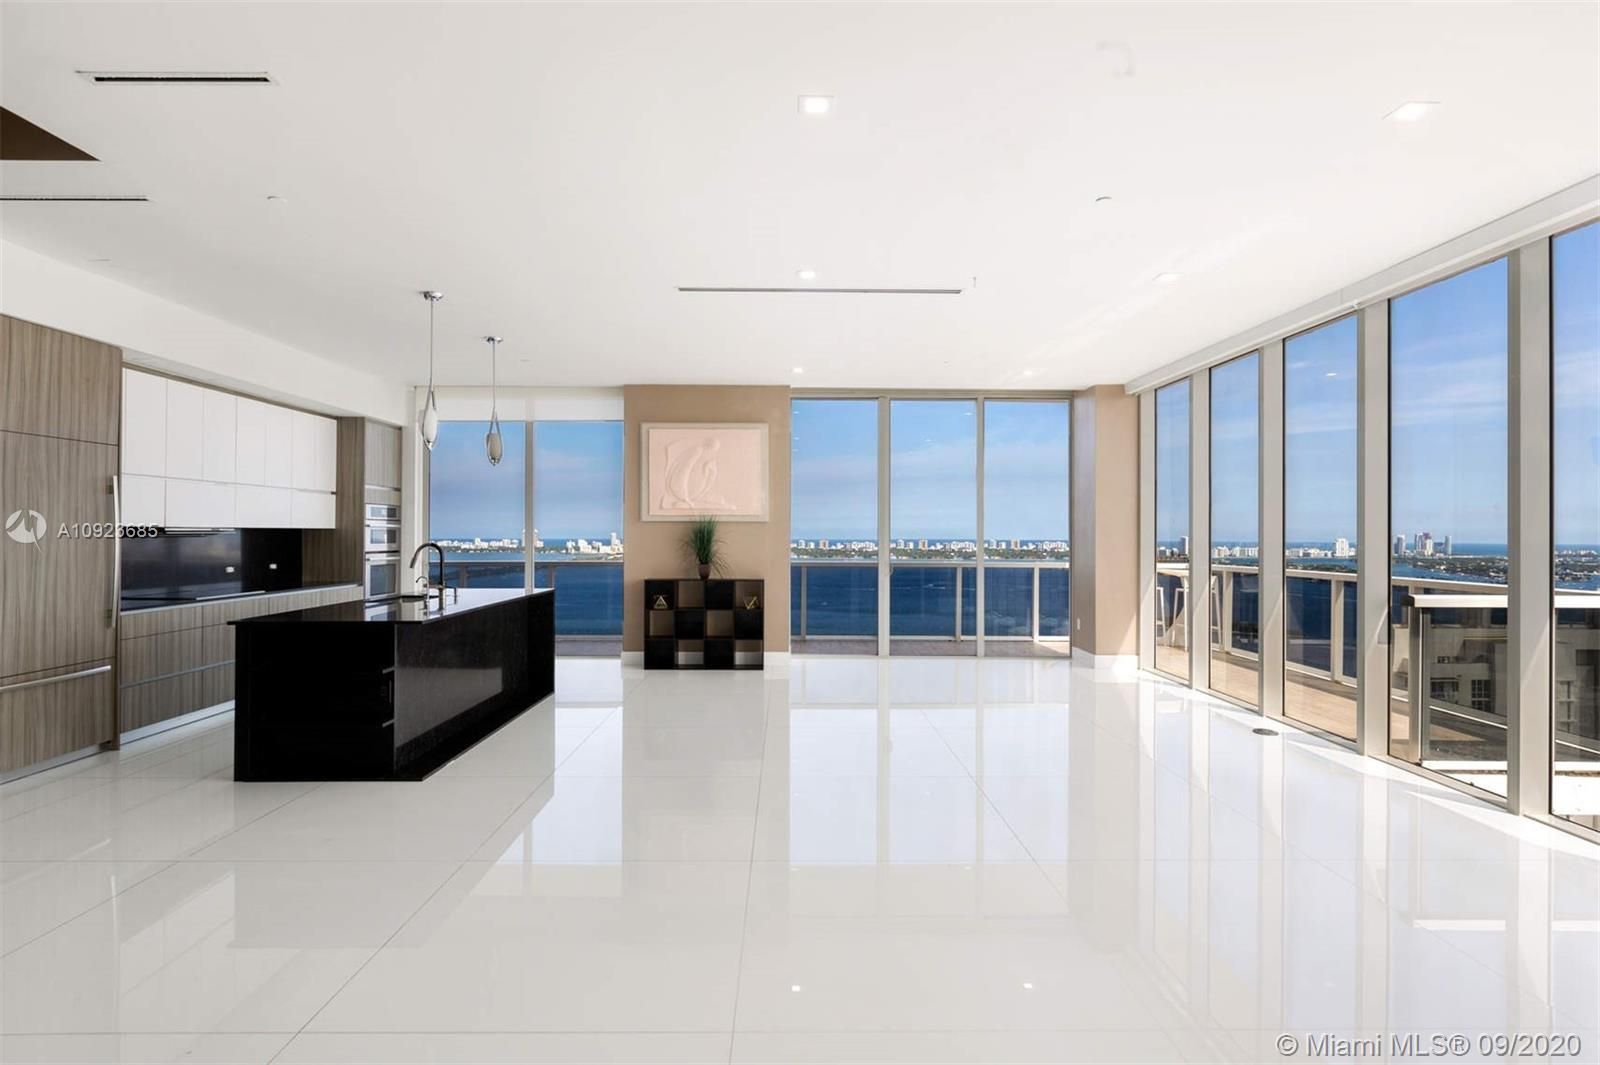 Top floor duplex penthouse with a private entrance from the elevator. This 6 bedroom, 6.5 bath home